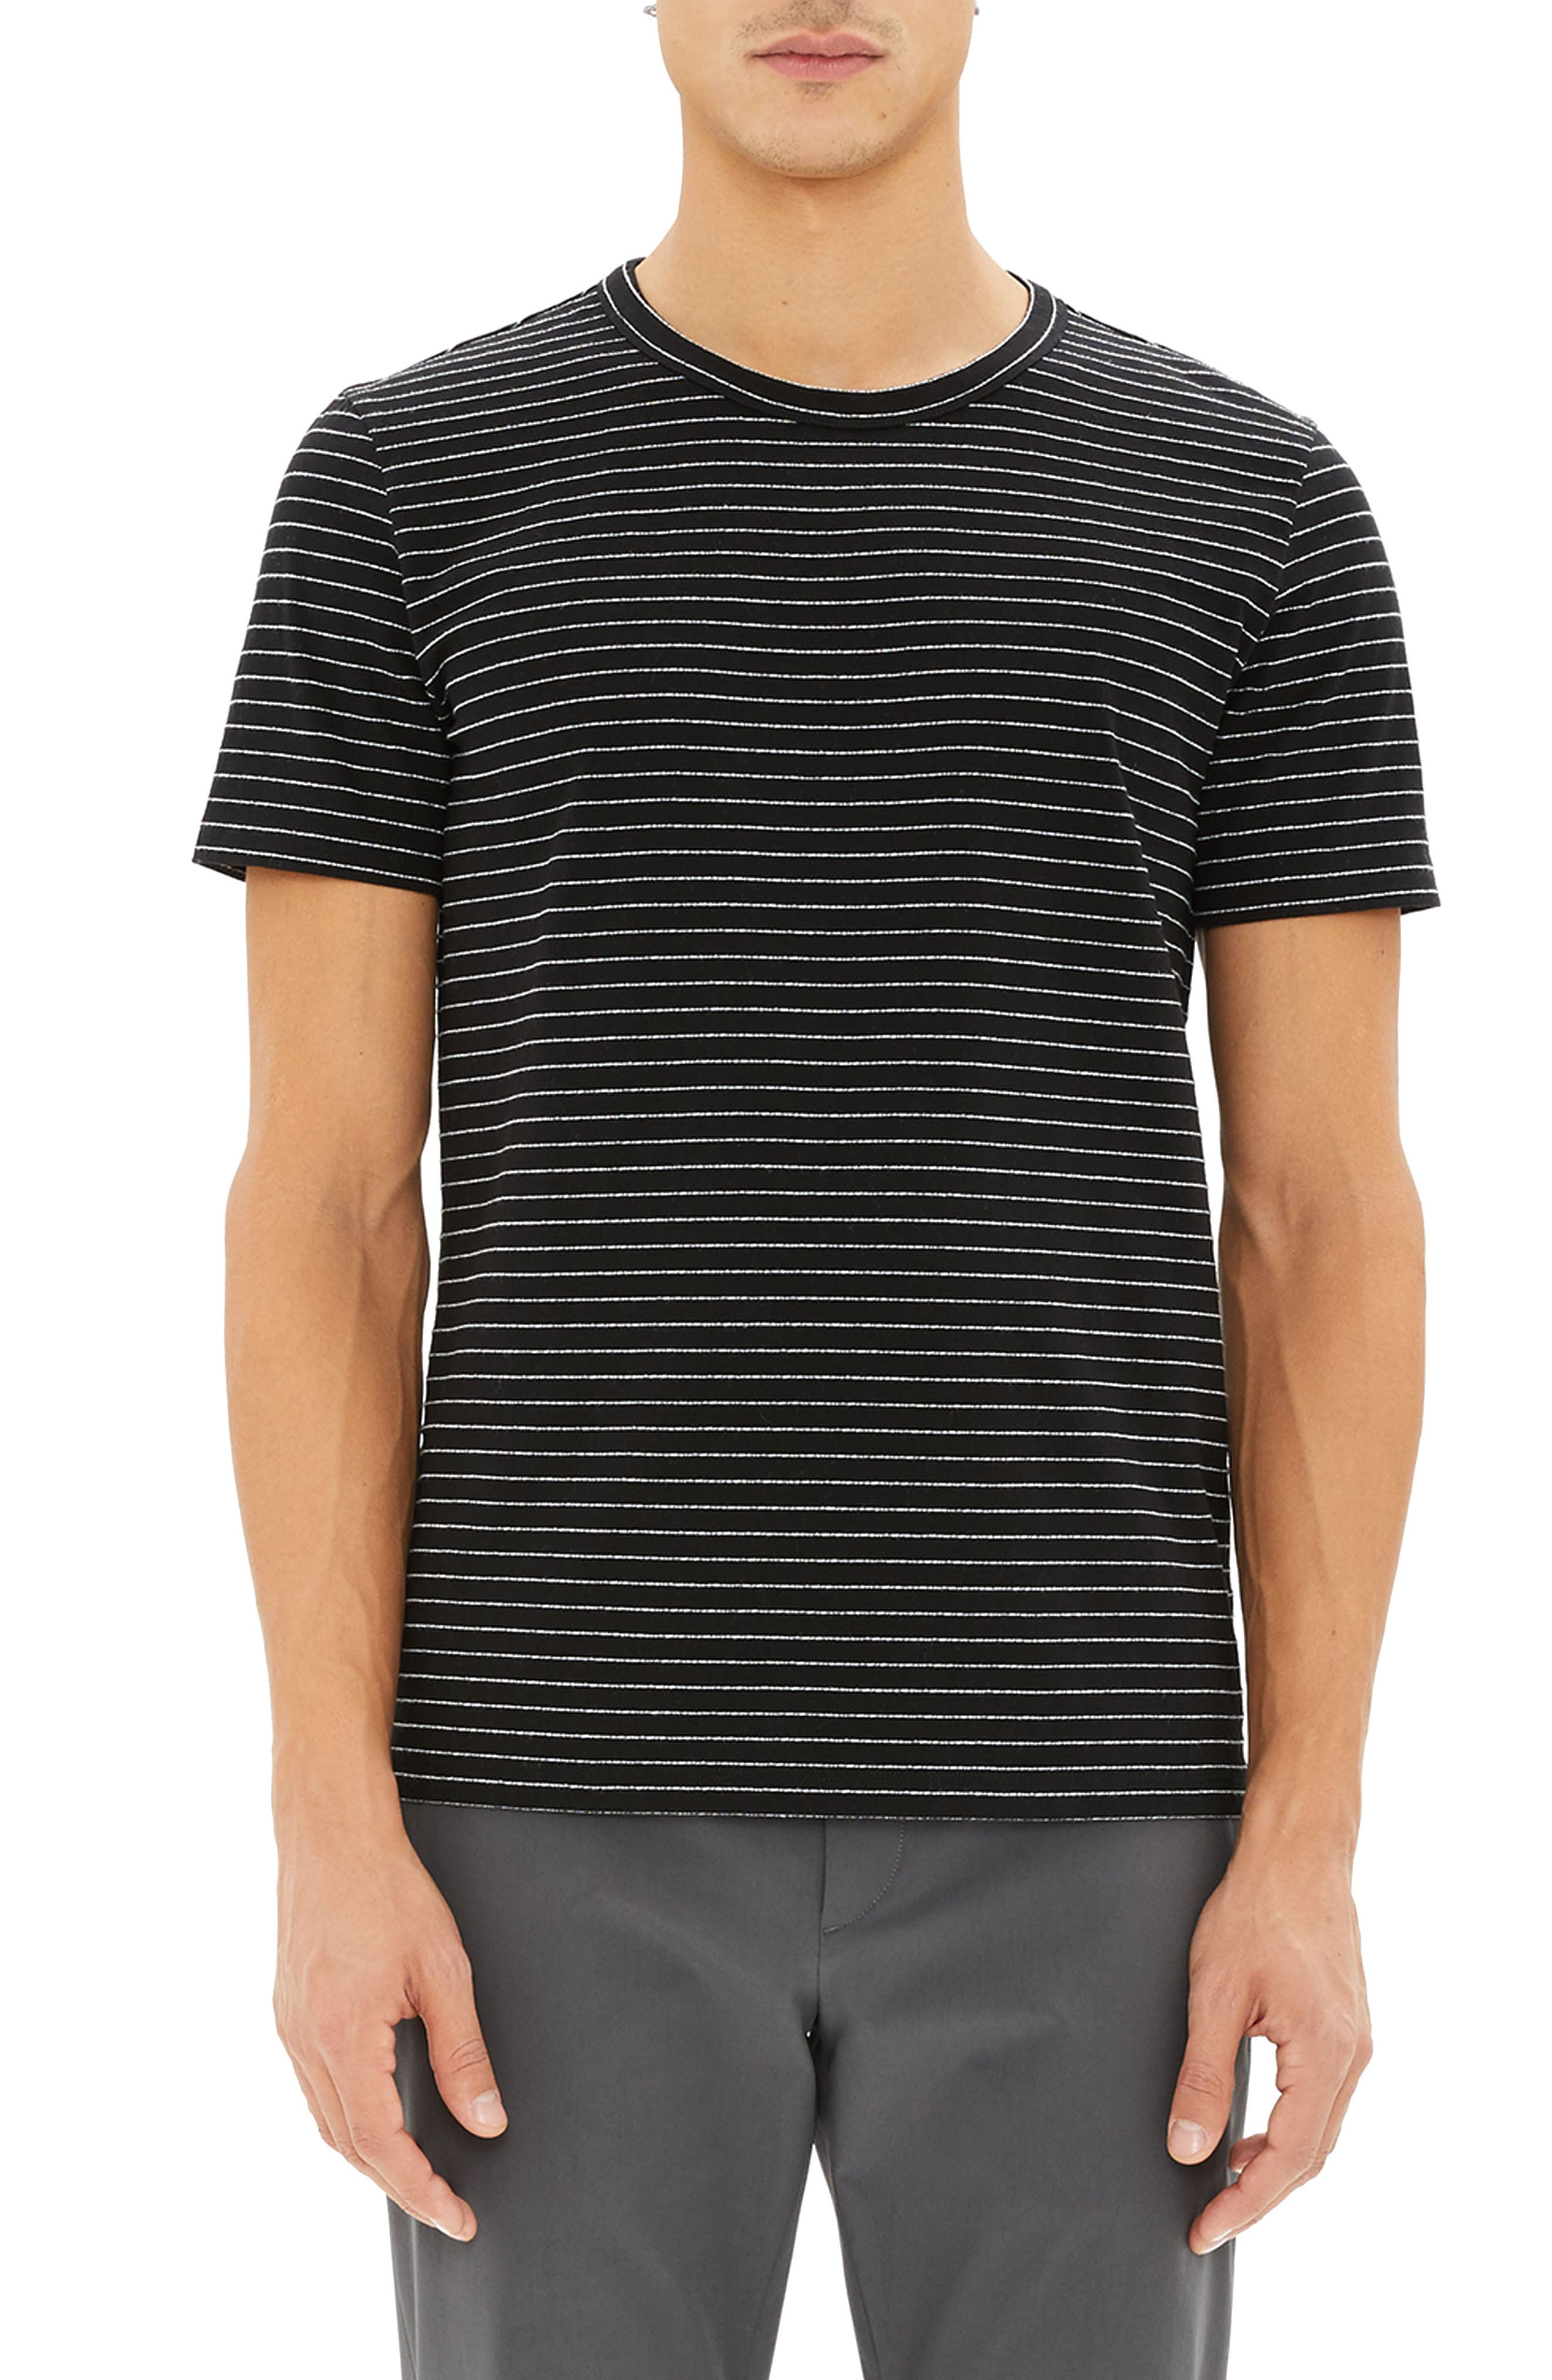 THEORY Essential Striped T-Shirt, Main, color, 009